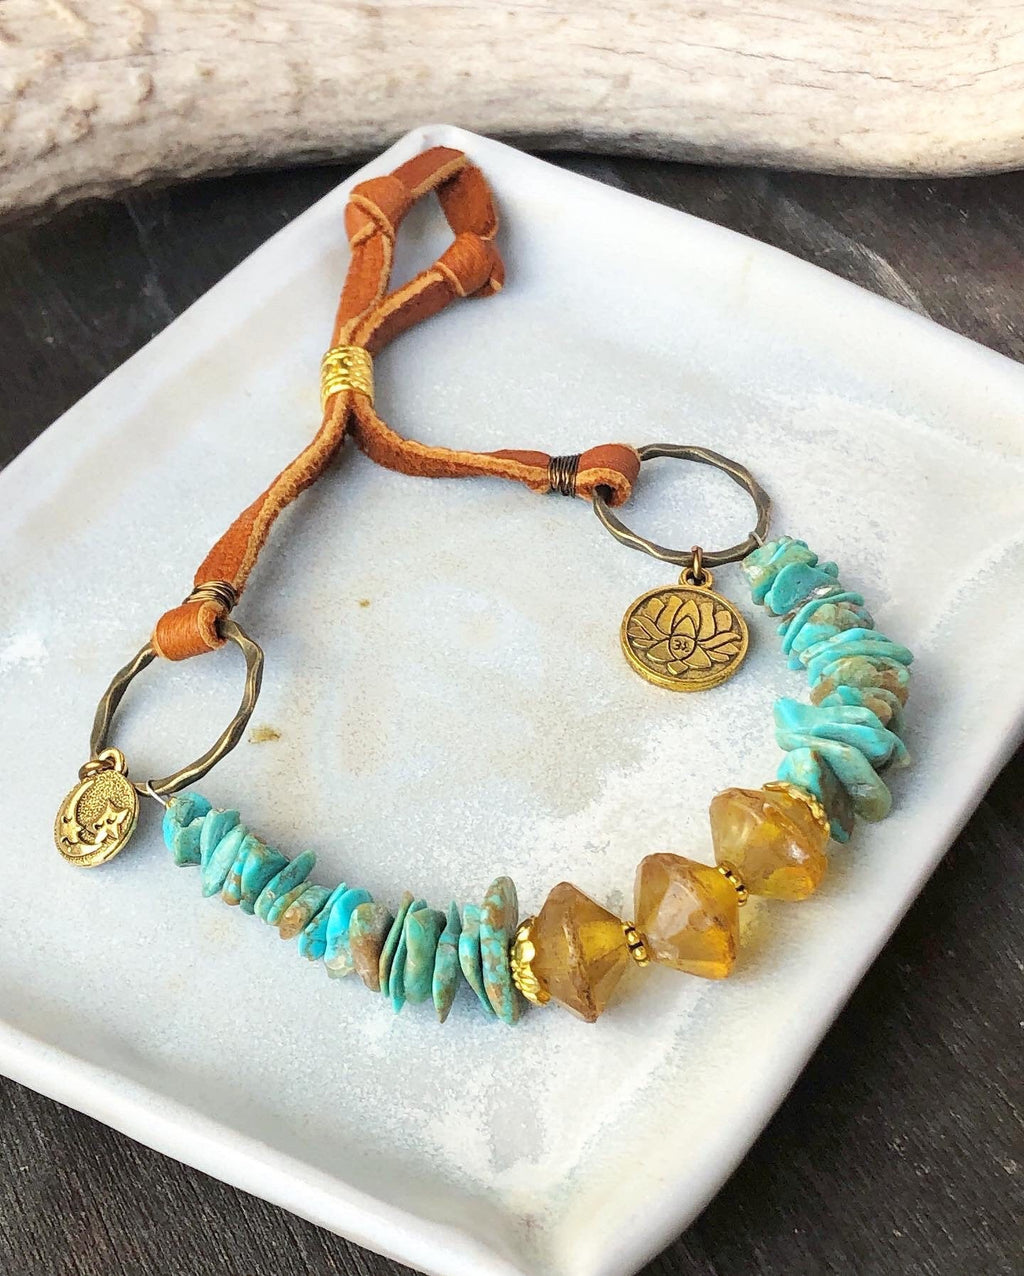 Amber Turquoise Bracelet / Vintage Baltic Amber / Vintage Recycled Genuine Turquoise / Brown Deerskin Leather Adjustable / Moon Charm Buddha